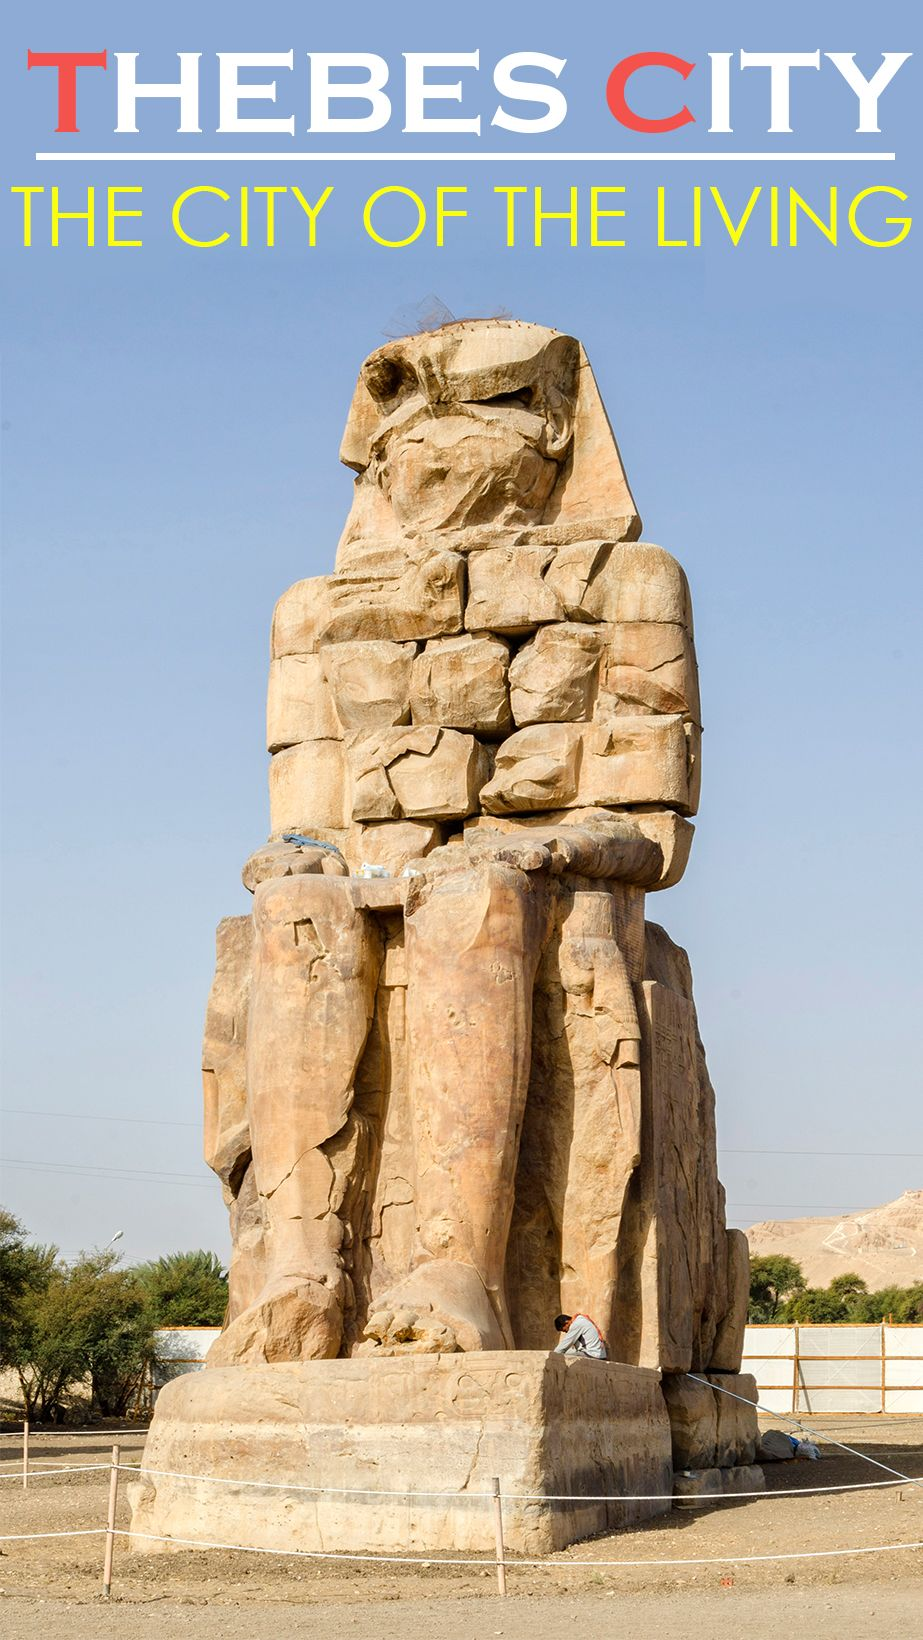 Thebes City Facts Thebes City History Thebes Egypt Thebes Location Thebes Egypt Tours Egypt